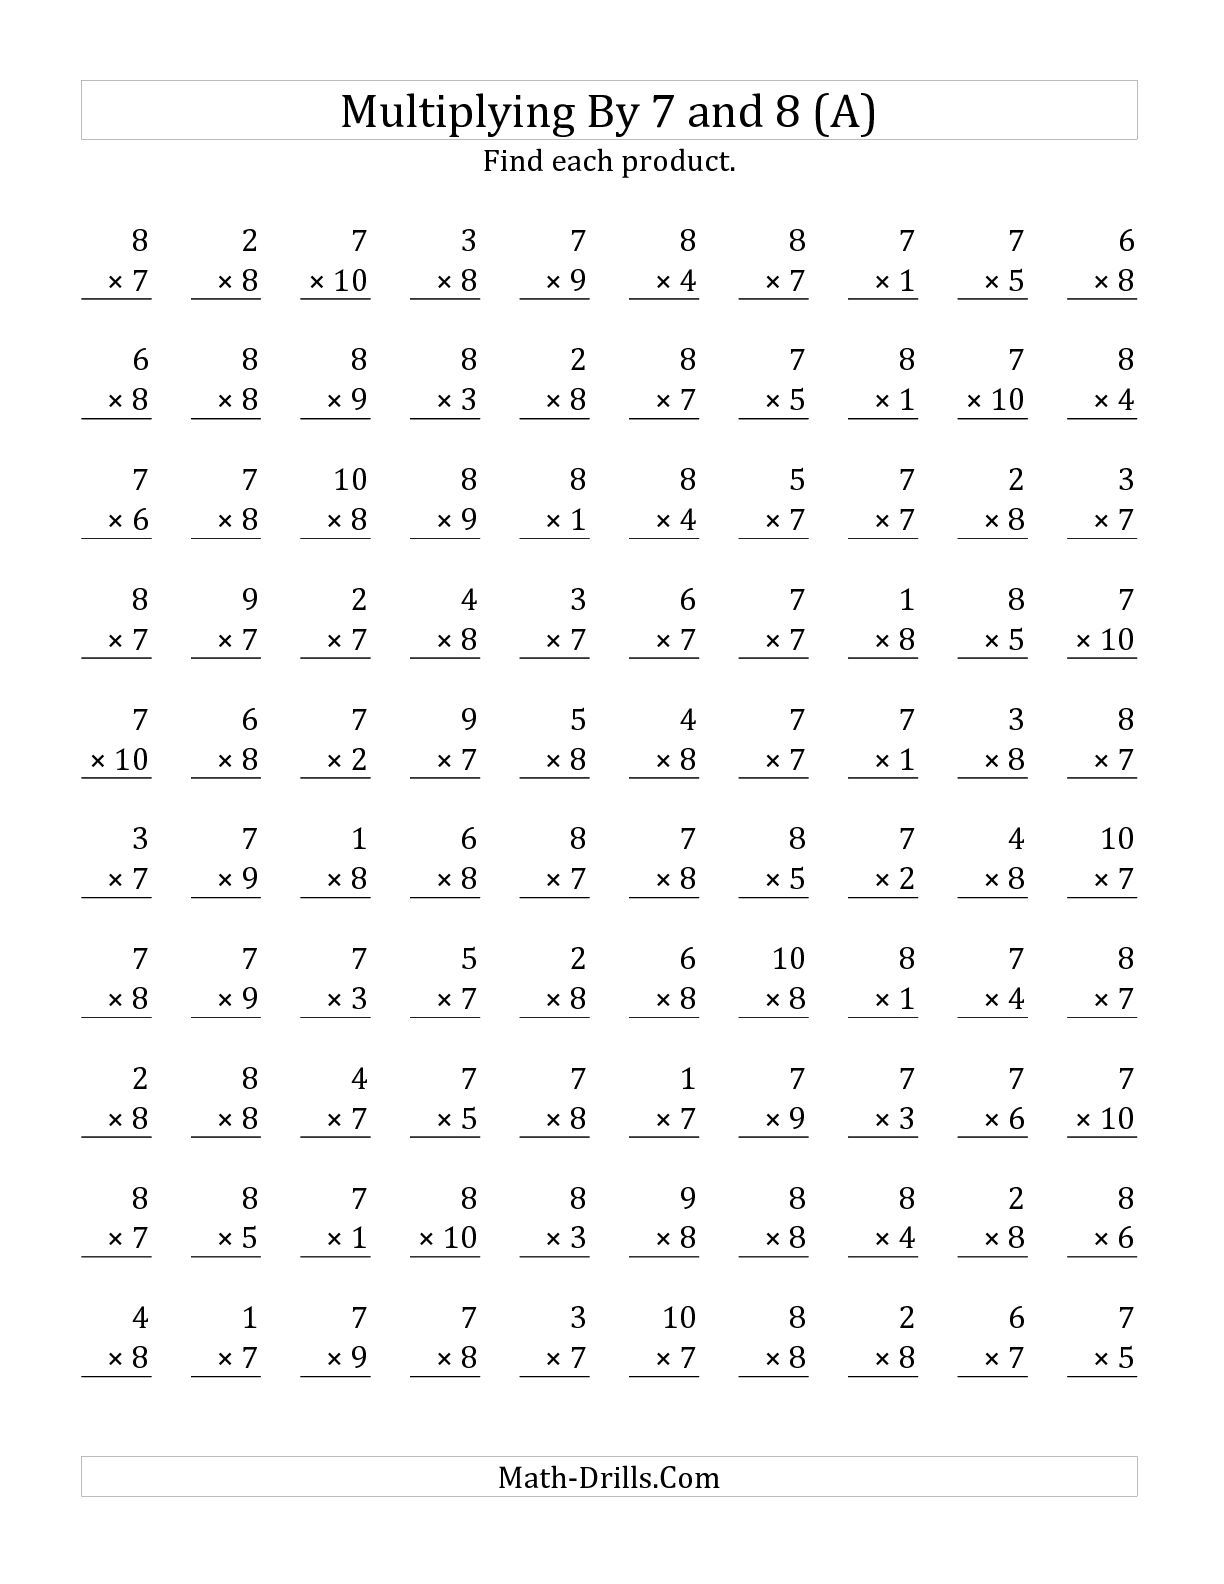 The Multiplying 1 To 10 By 7 And 8 A Math Worksheet From The Multiplication Facts